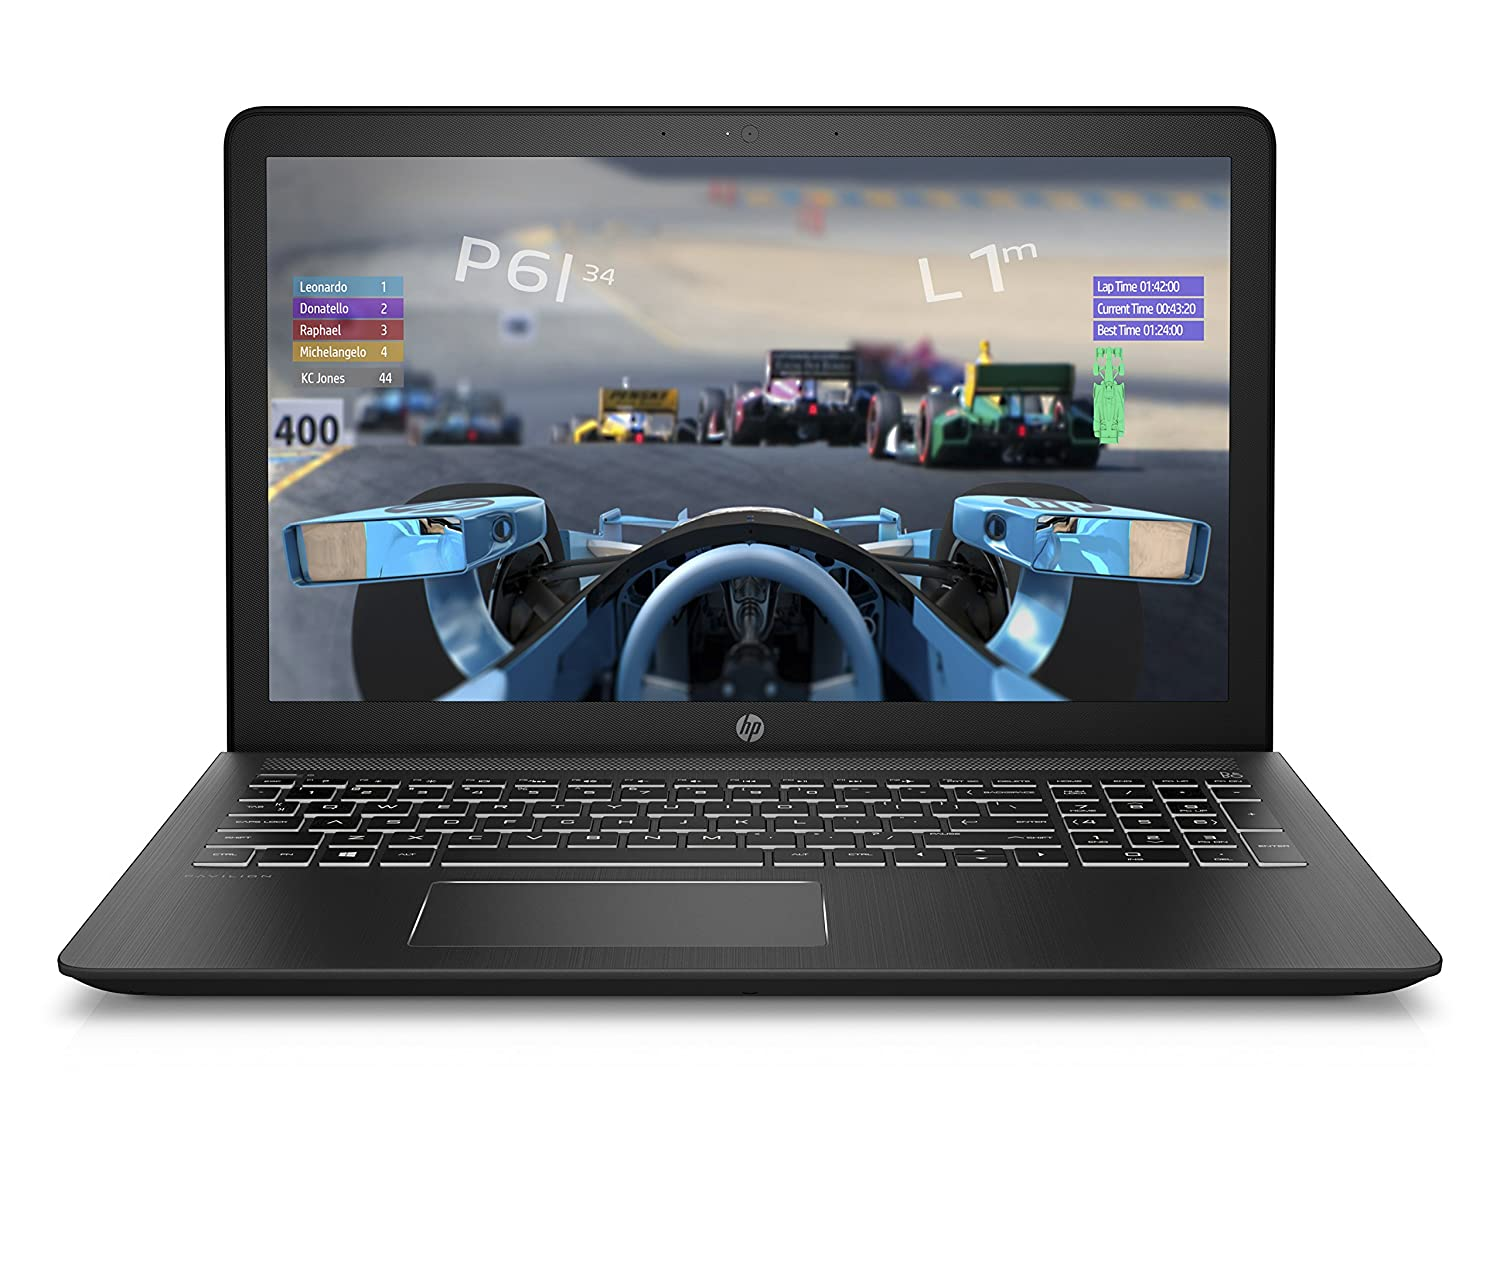 Amazon.com: HP Pavilion Power 15-inch Laptop, Intel Core i5-7300HQ, NVIDIA GeForce GTX 1050, 12GB RAM, 1TB Hard Drive, Windows 10 (15-cb010nr, ...